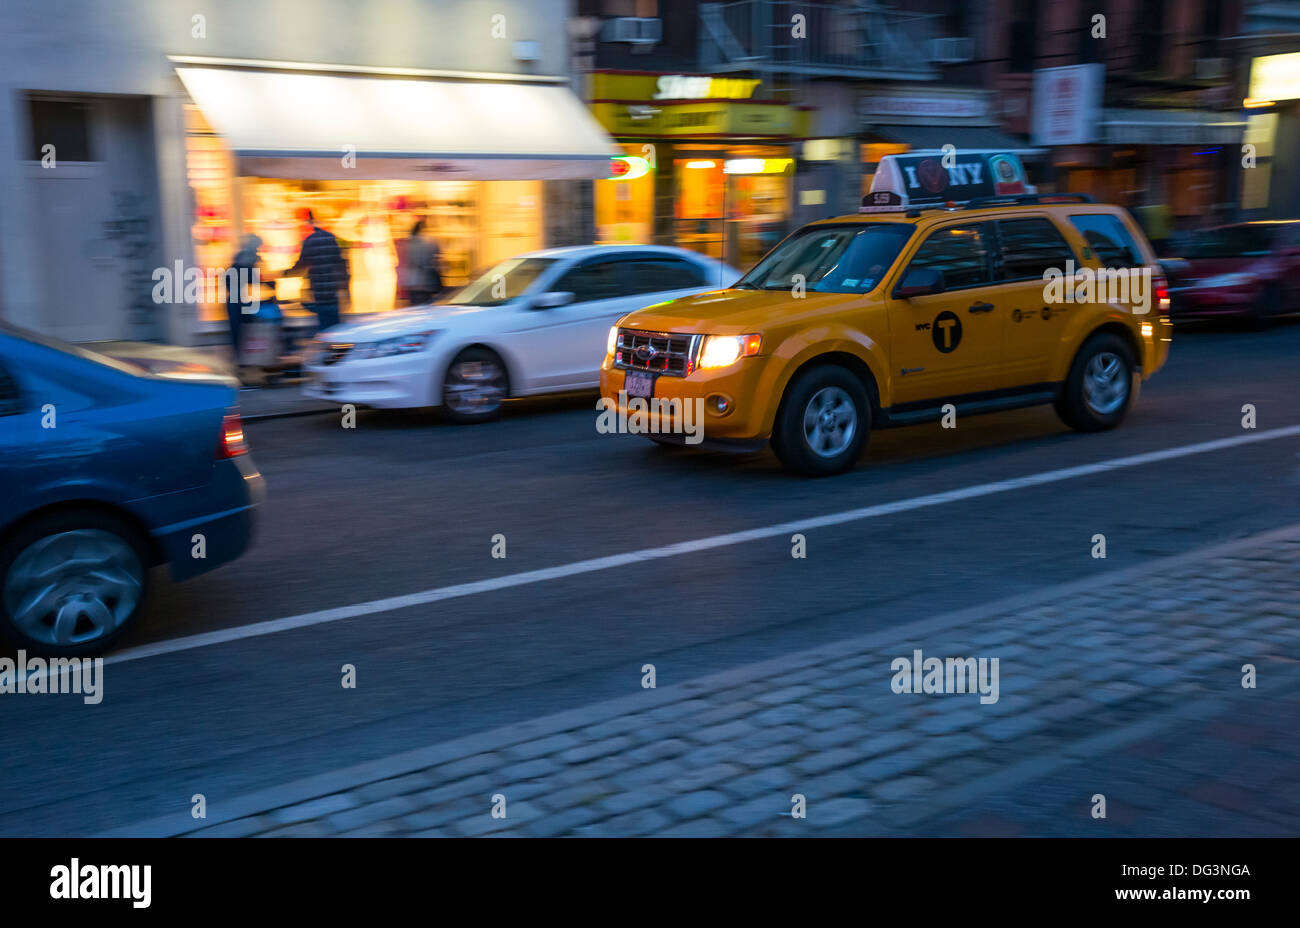 Yellow taxicab in New York City at night - Stock Image